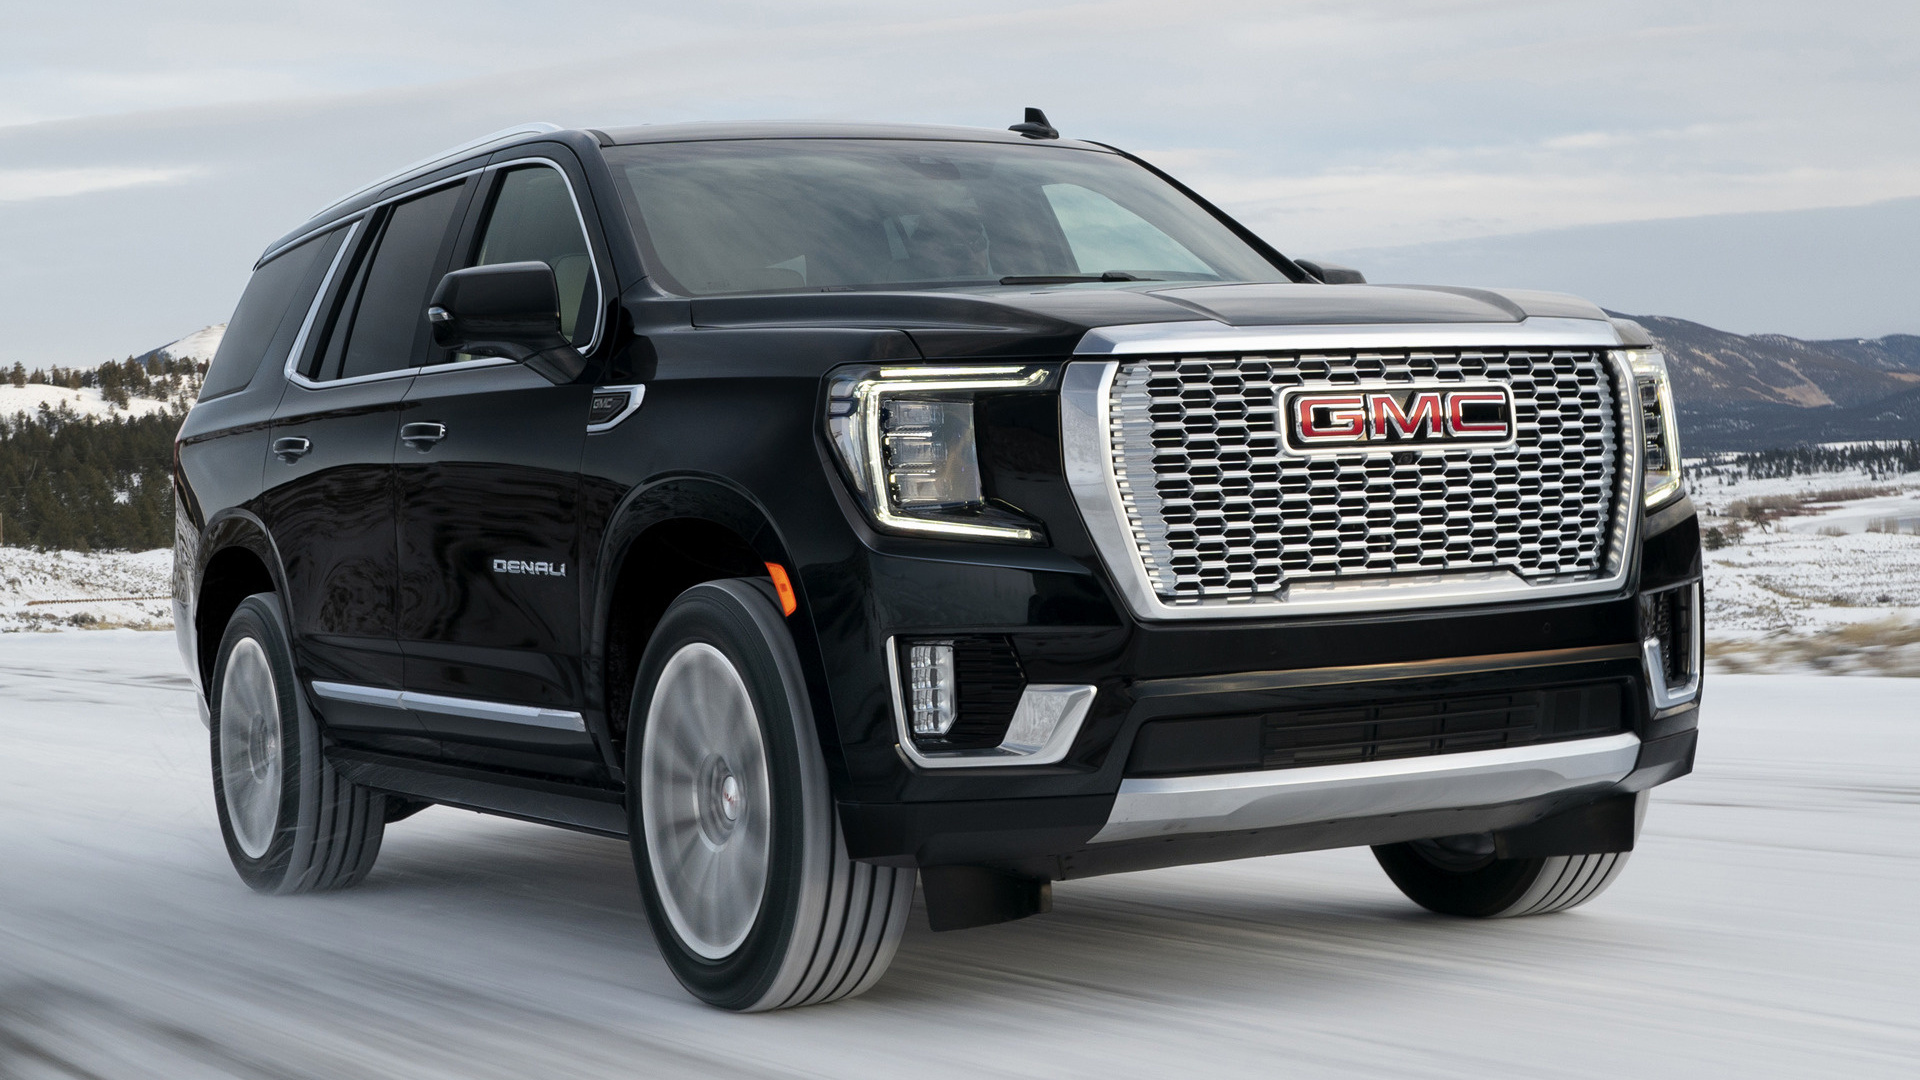 2021 gmc yukon denali  wallpapers and hd images  car pixel